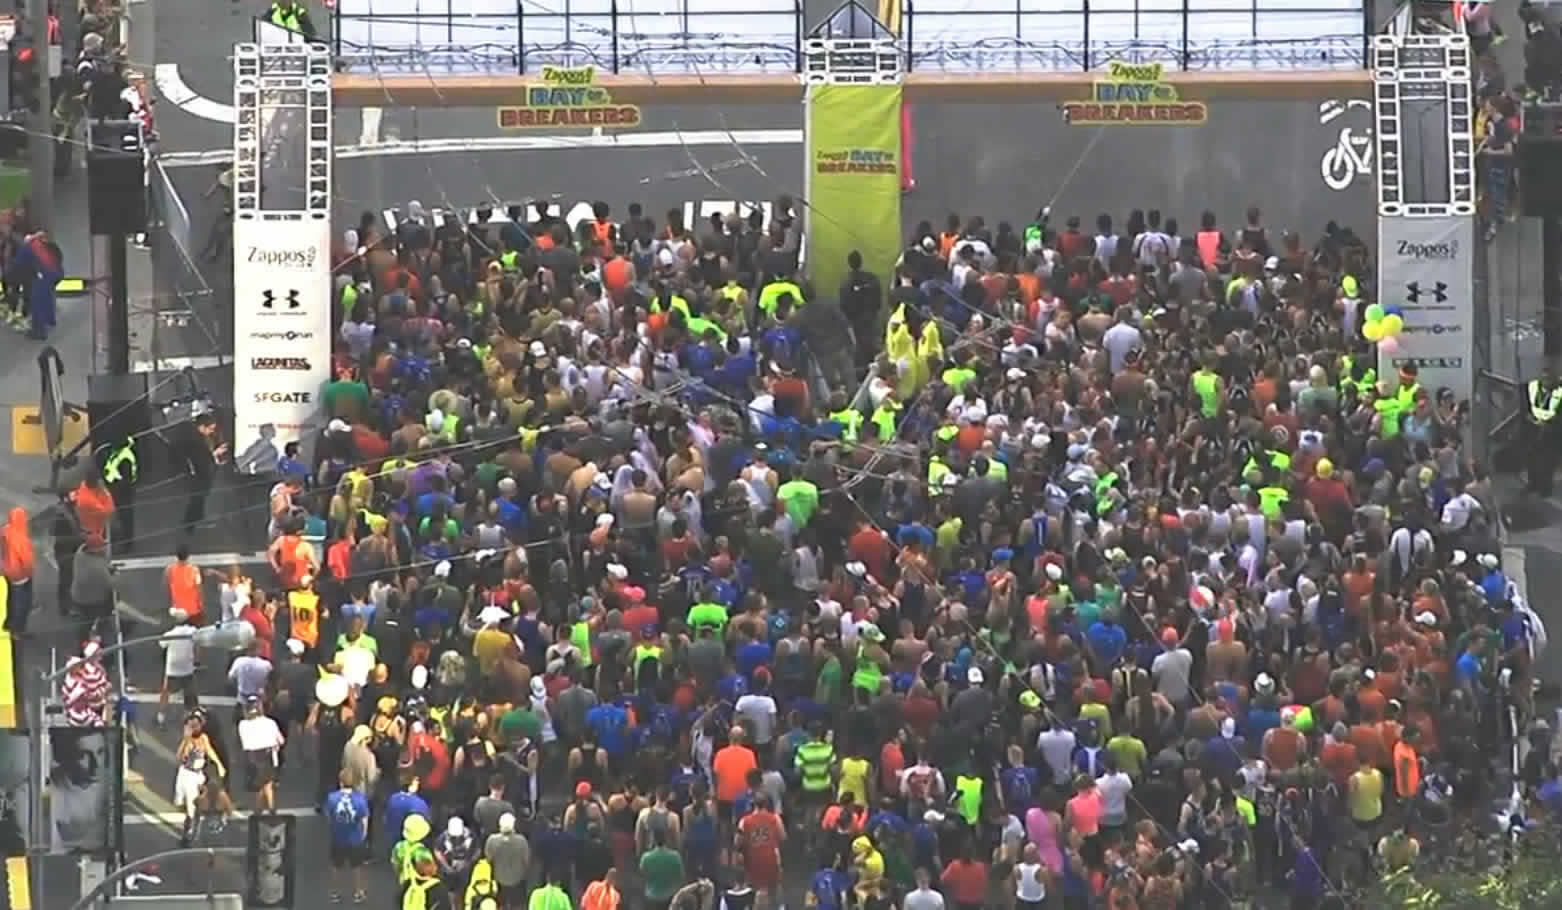 <div class='meta'><div class='origin-logo' data-origin='none'></div><span class='caption-text' data-credit='KGO-TV'>Runners line up for the start of the Bay to Breakers race in San Francisco on Sunday, May 15, 2106.</span></div>